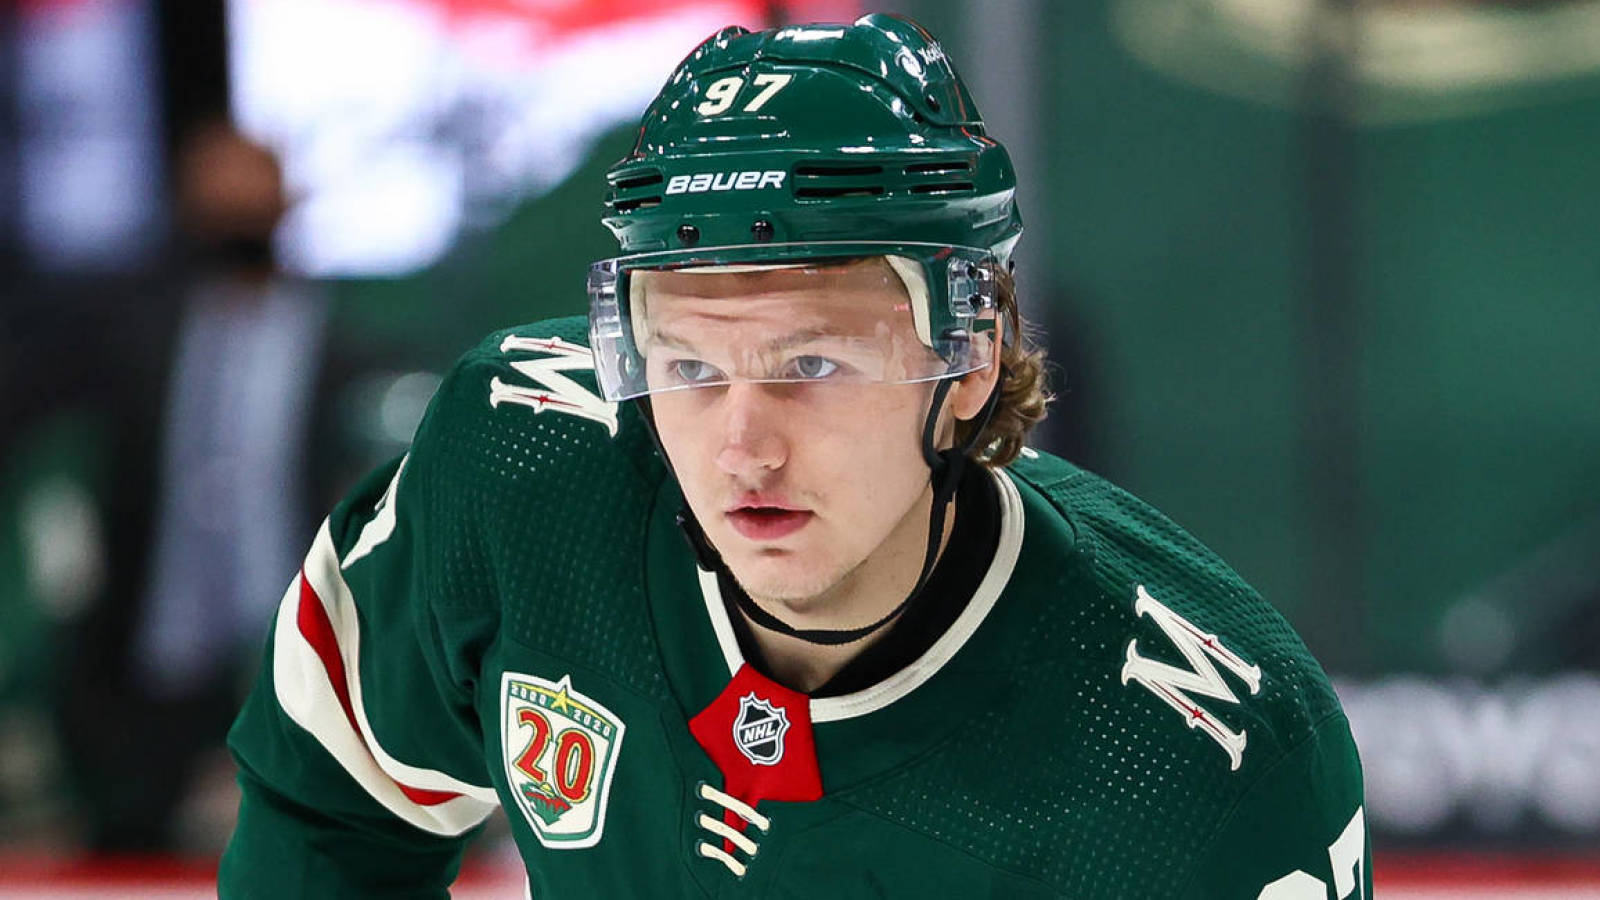 Does Kaprizov have an agreement with KHL if the contract with Wild is not resolved?